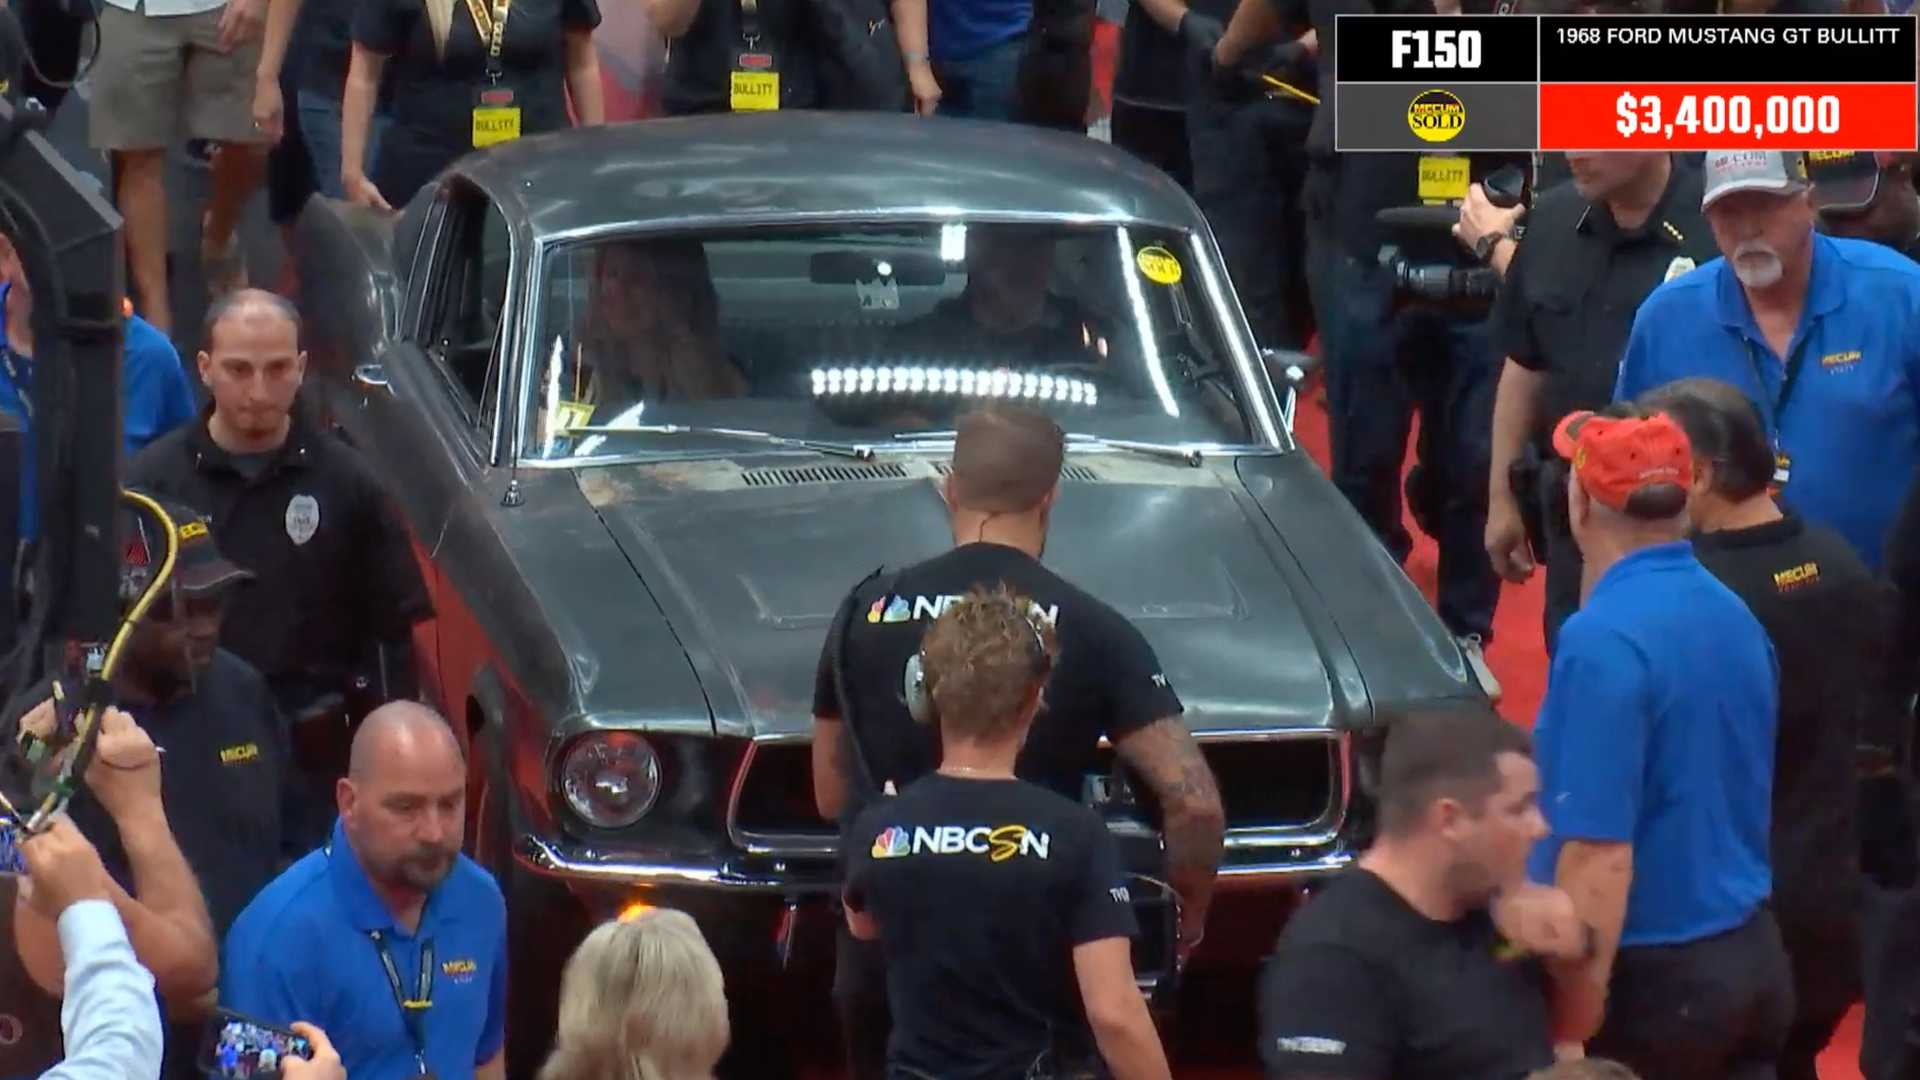 Mustang Bullitt Movie Car Sells For Record $3.4M At Auction